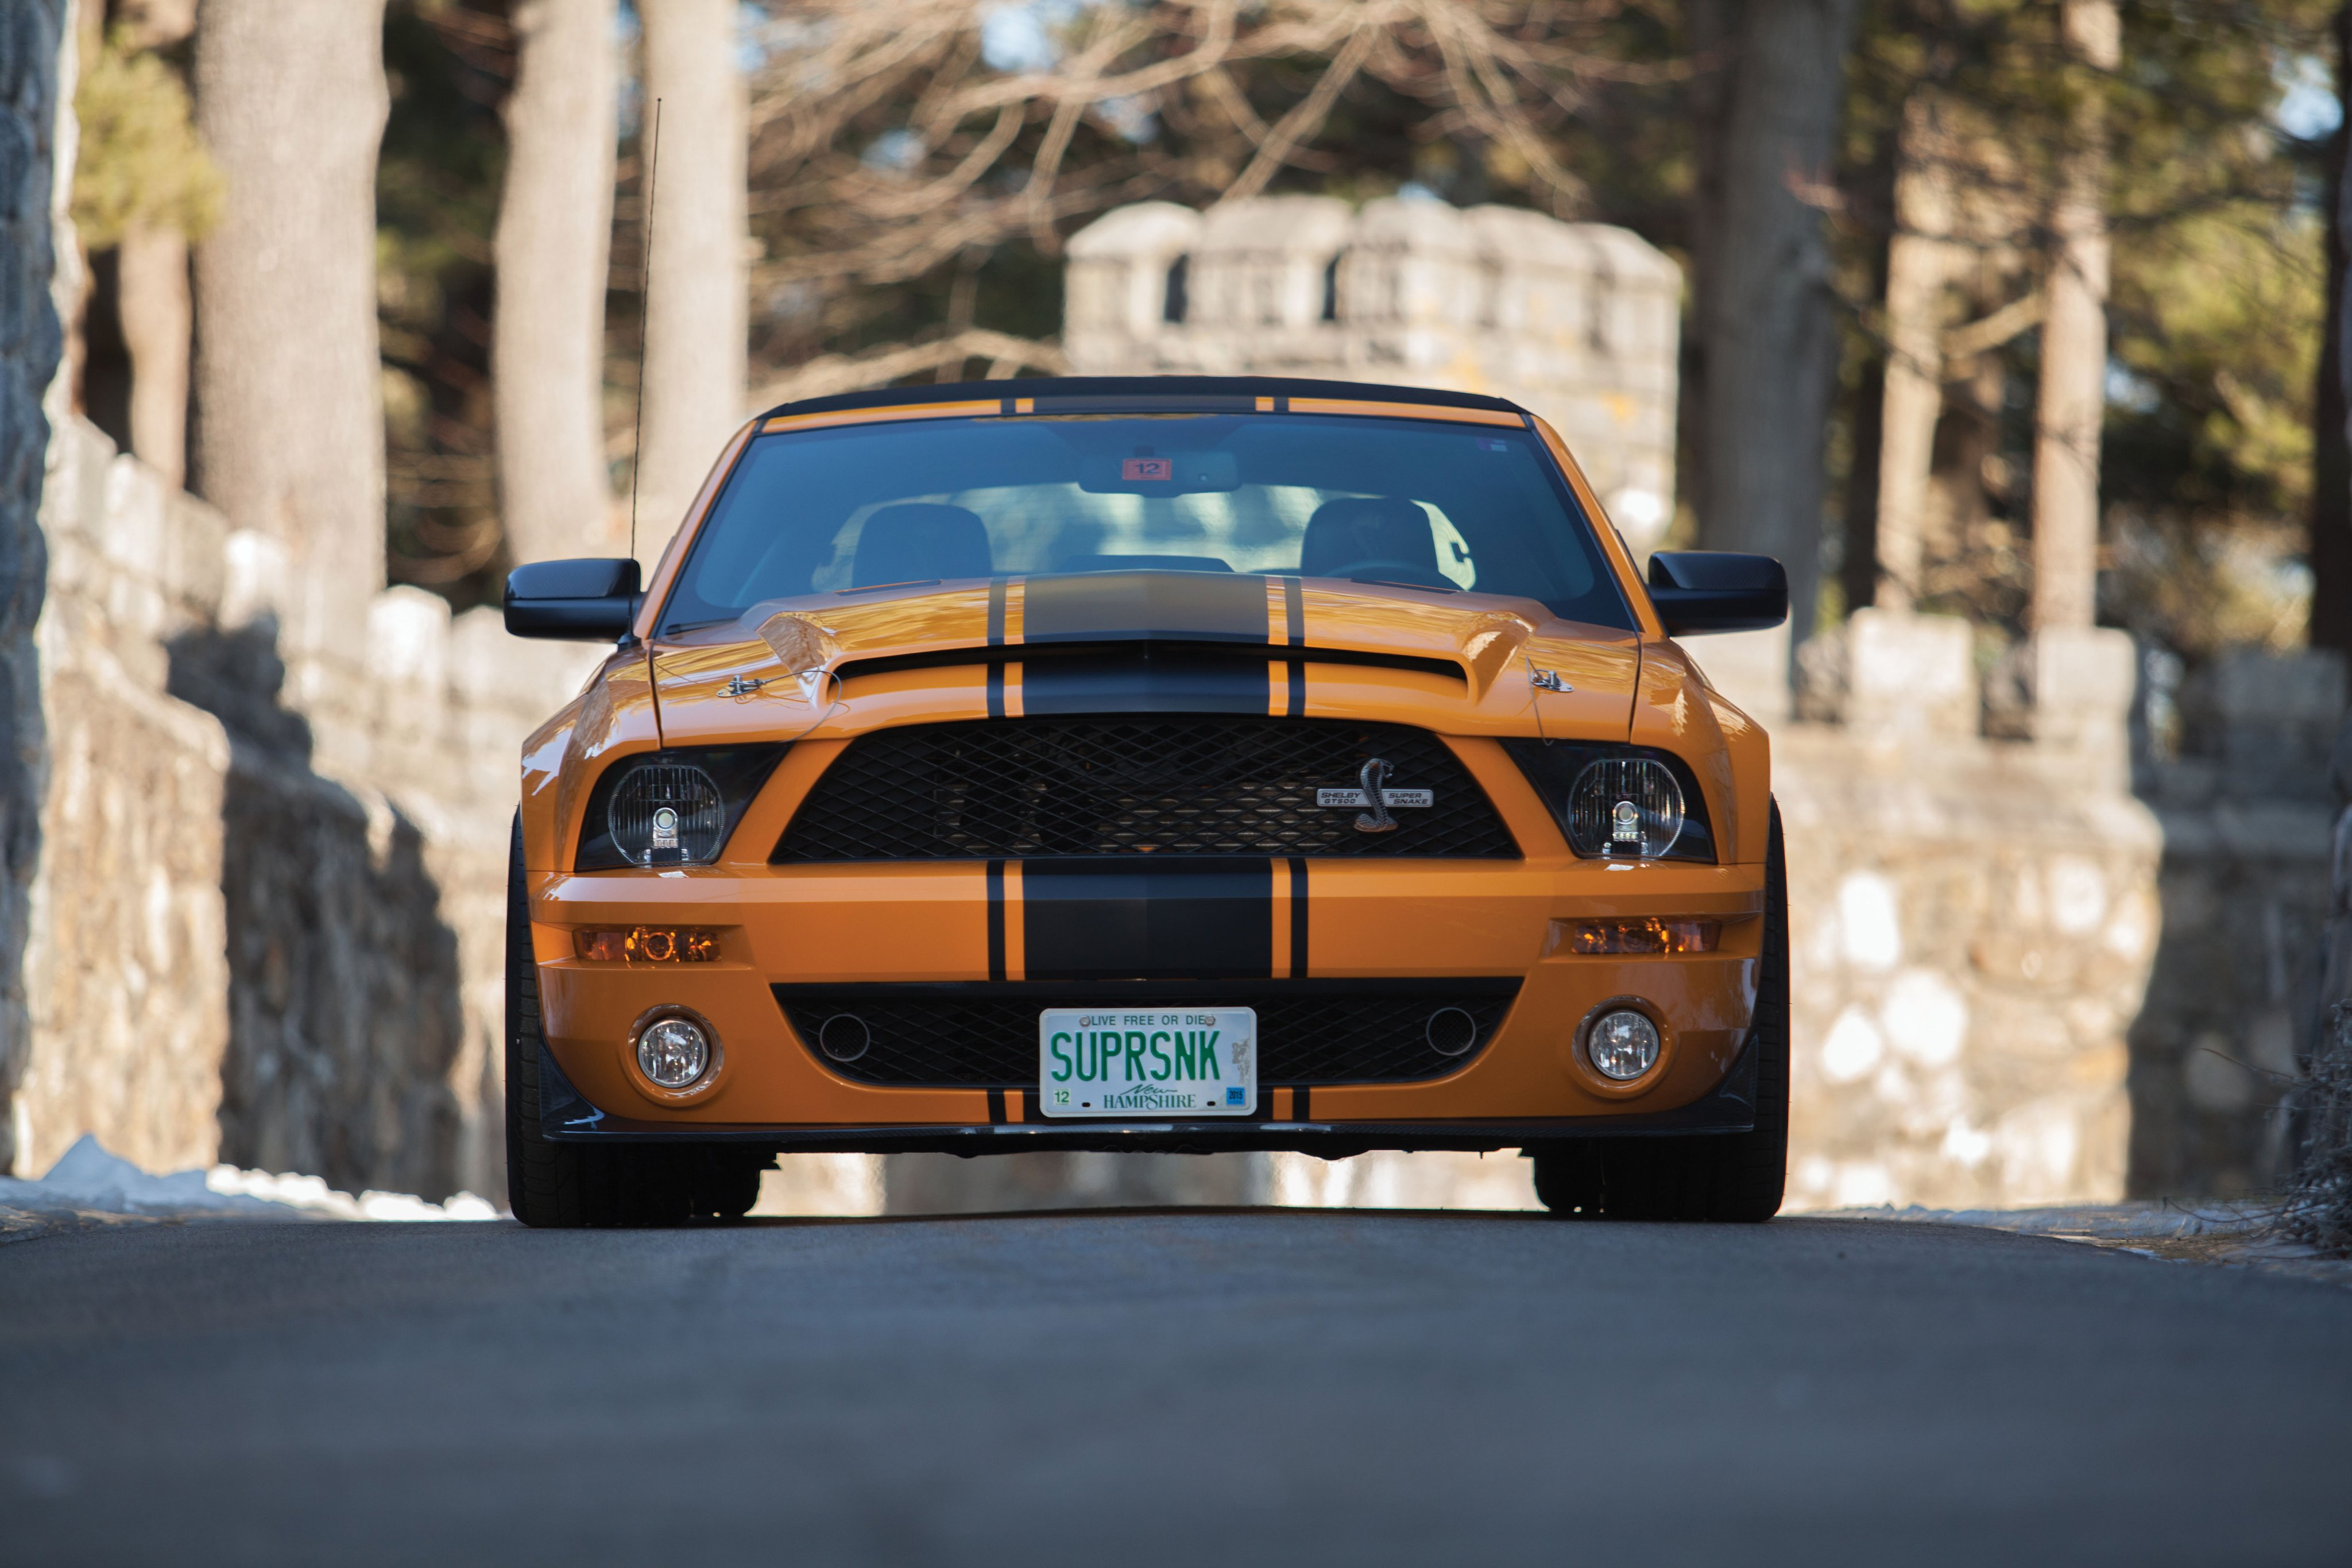 2007 Shelby Gt500 Super Snake Convertible Prototype Ford